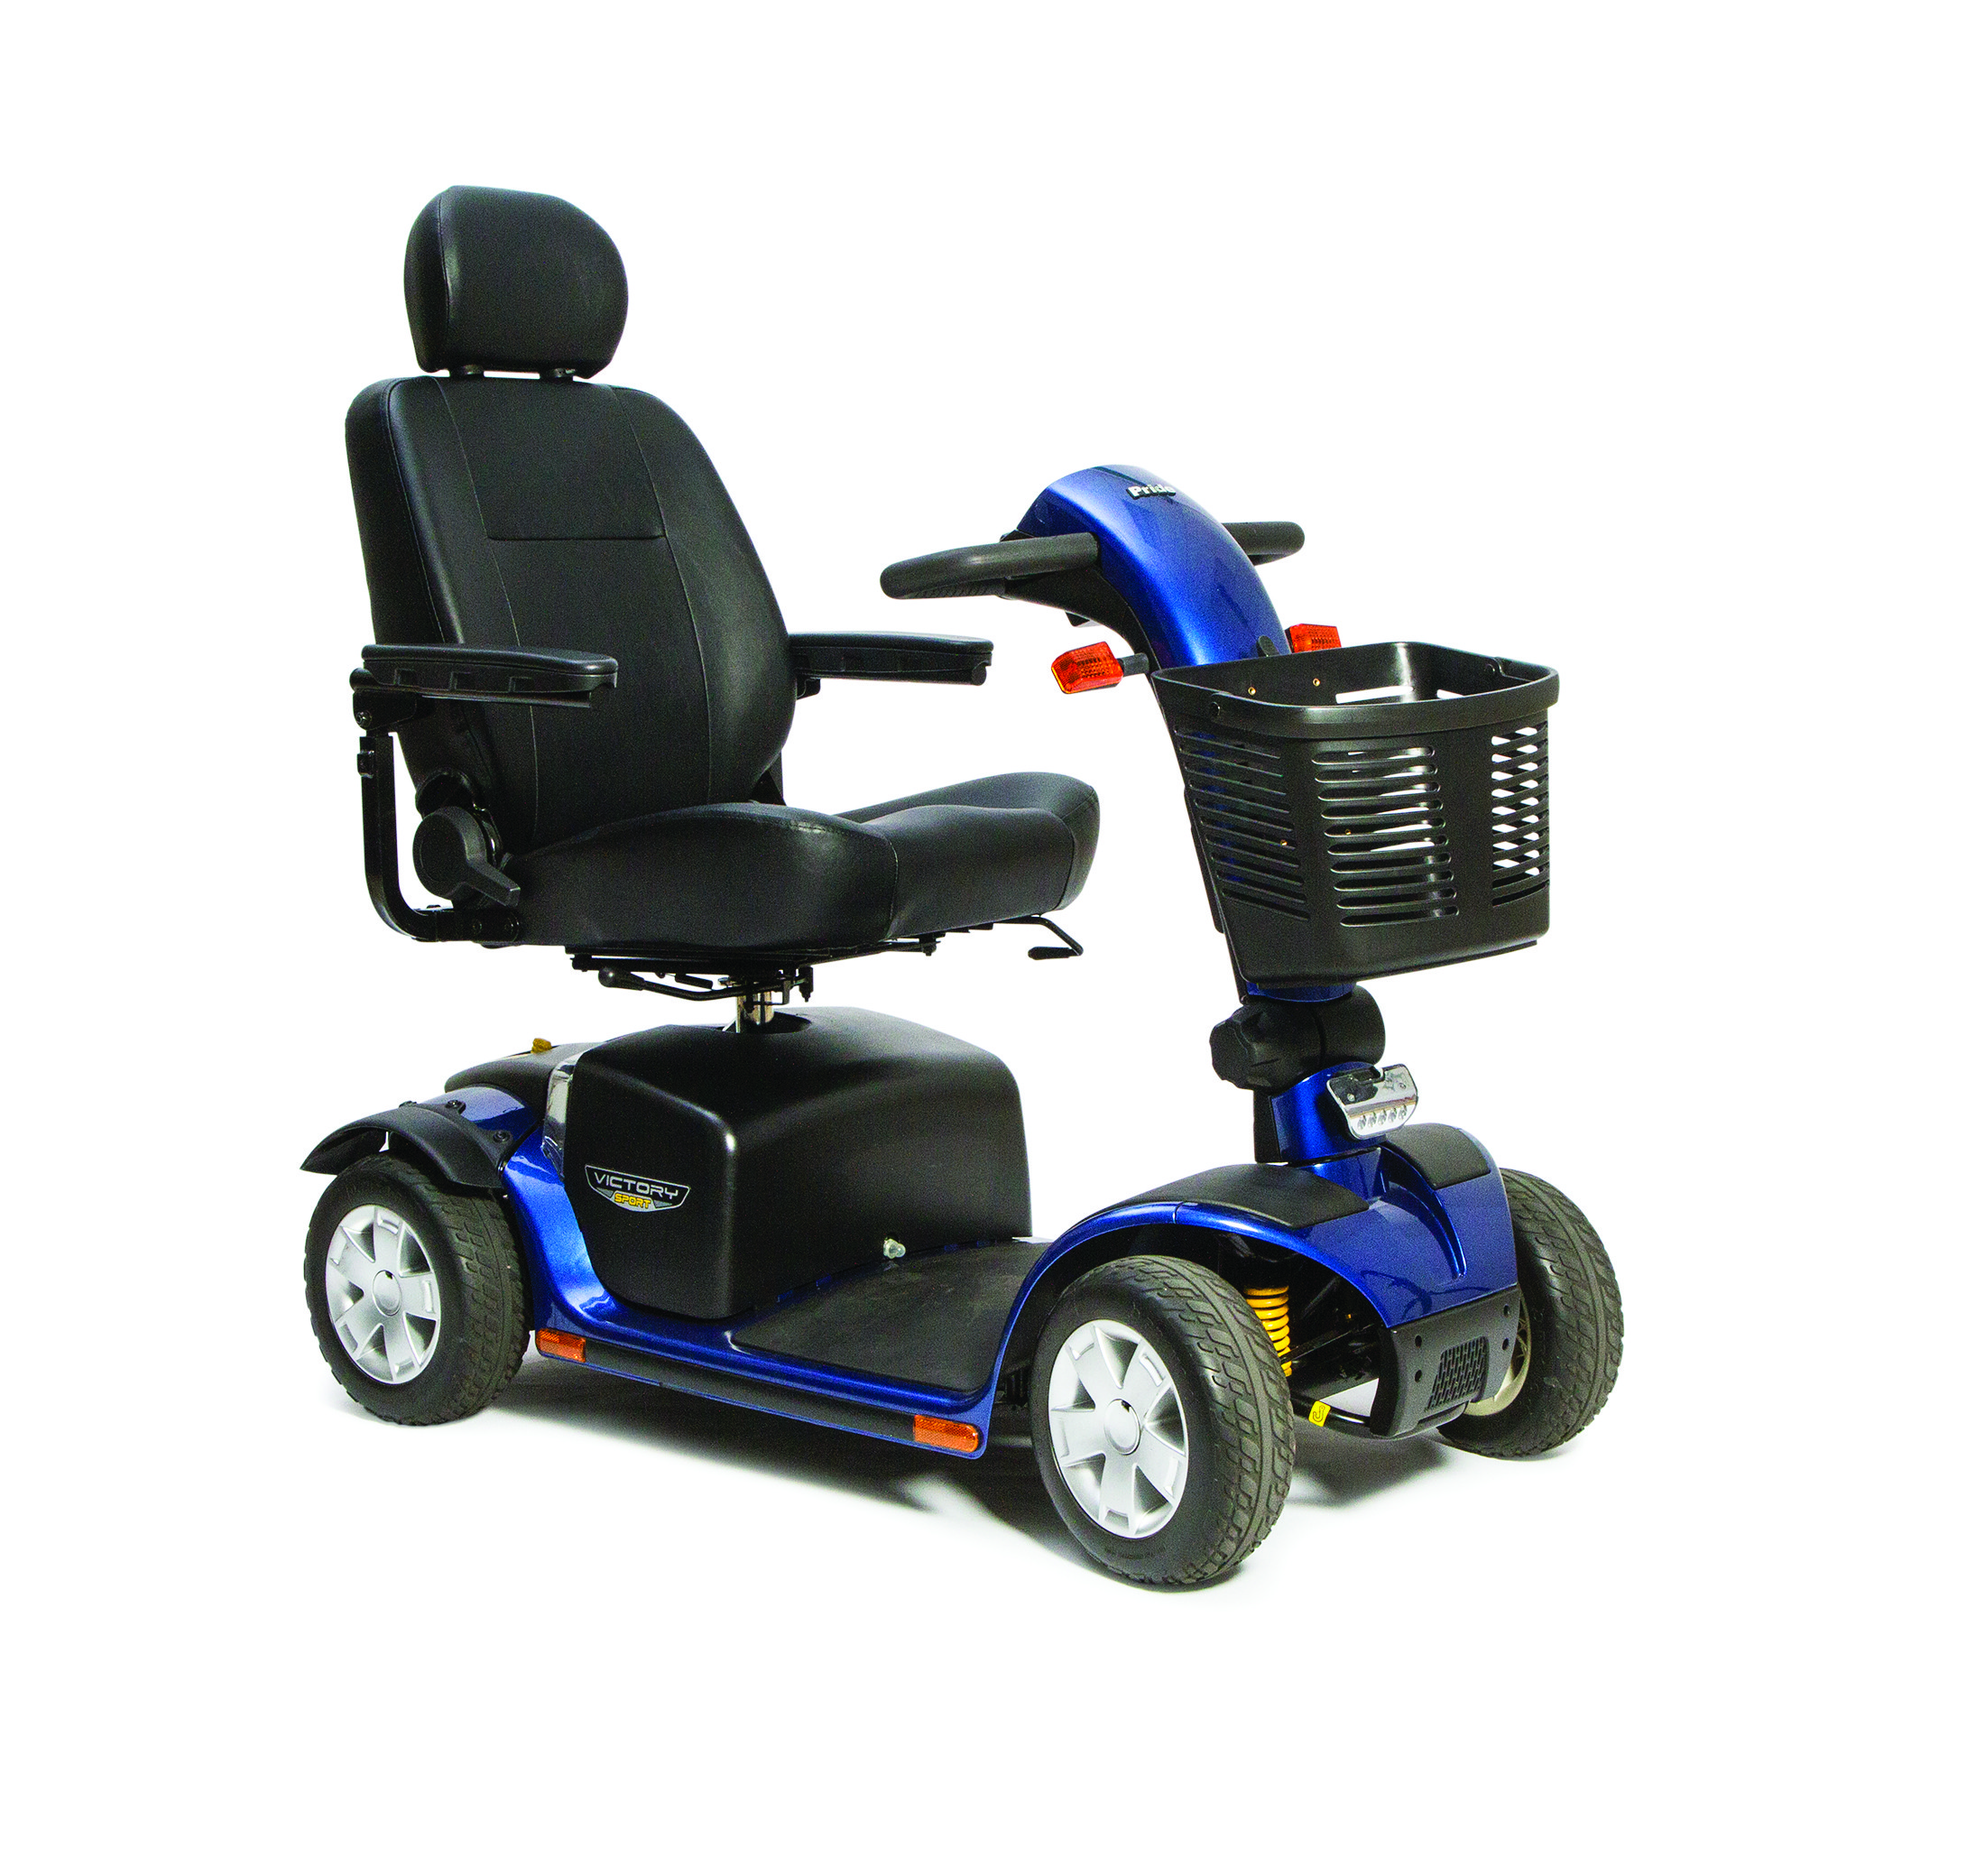 Scooter LG Powerchair Rental